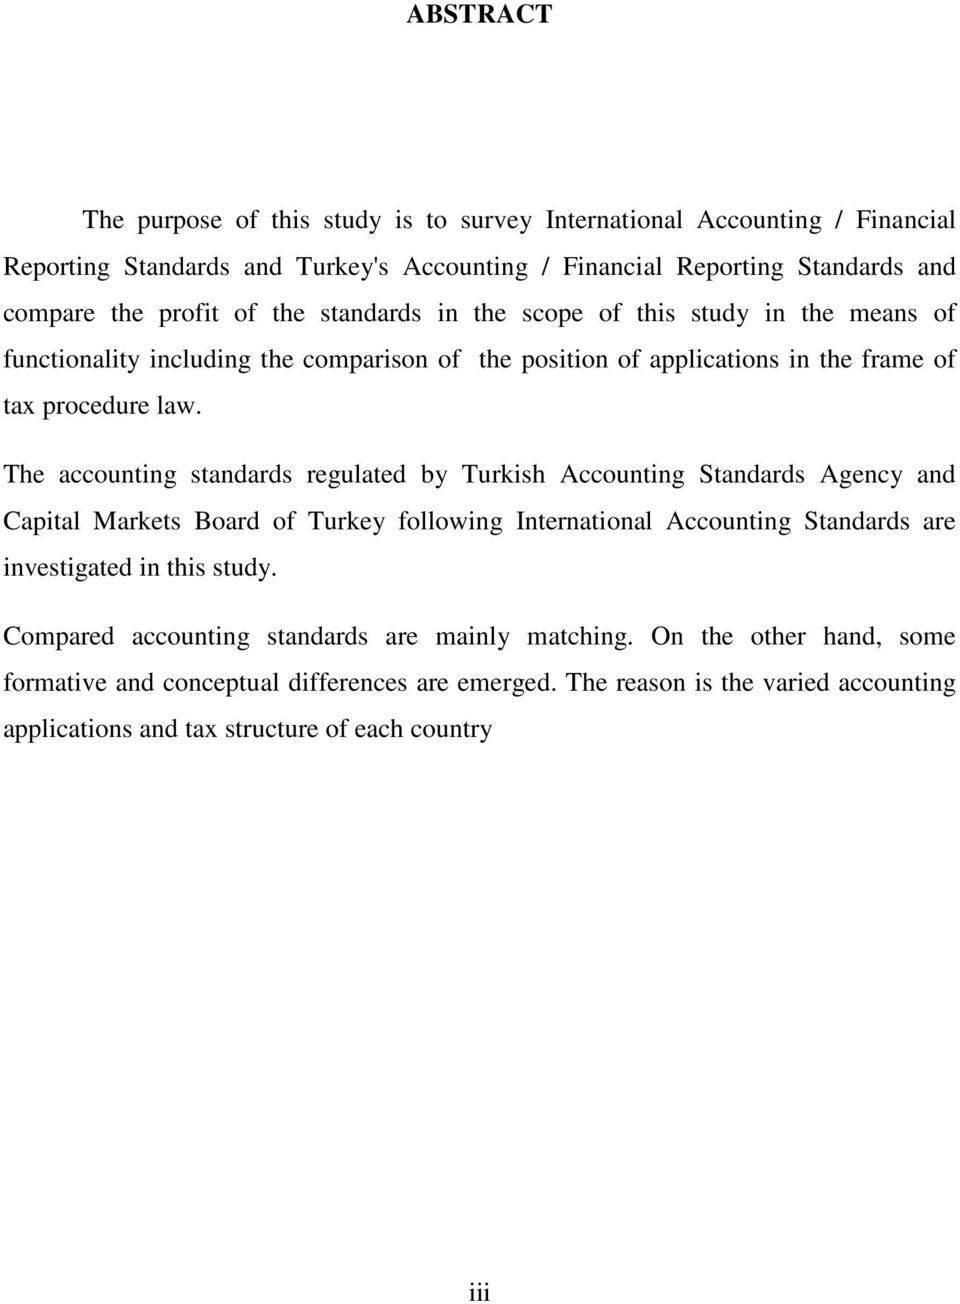 The accounting standards regulated by Turkish Accounting Standards Agency and Capital Markets Board of Turkey following International Accounting Standards are investigated in this study.